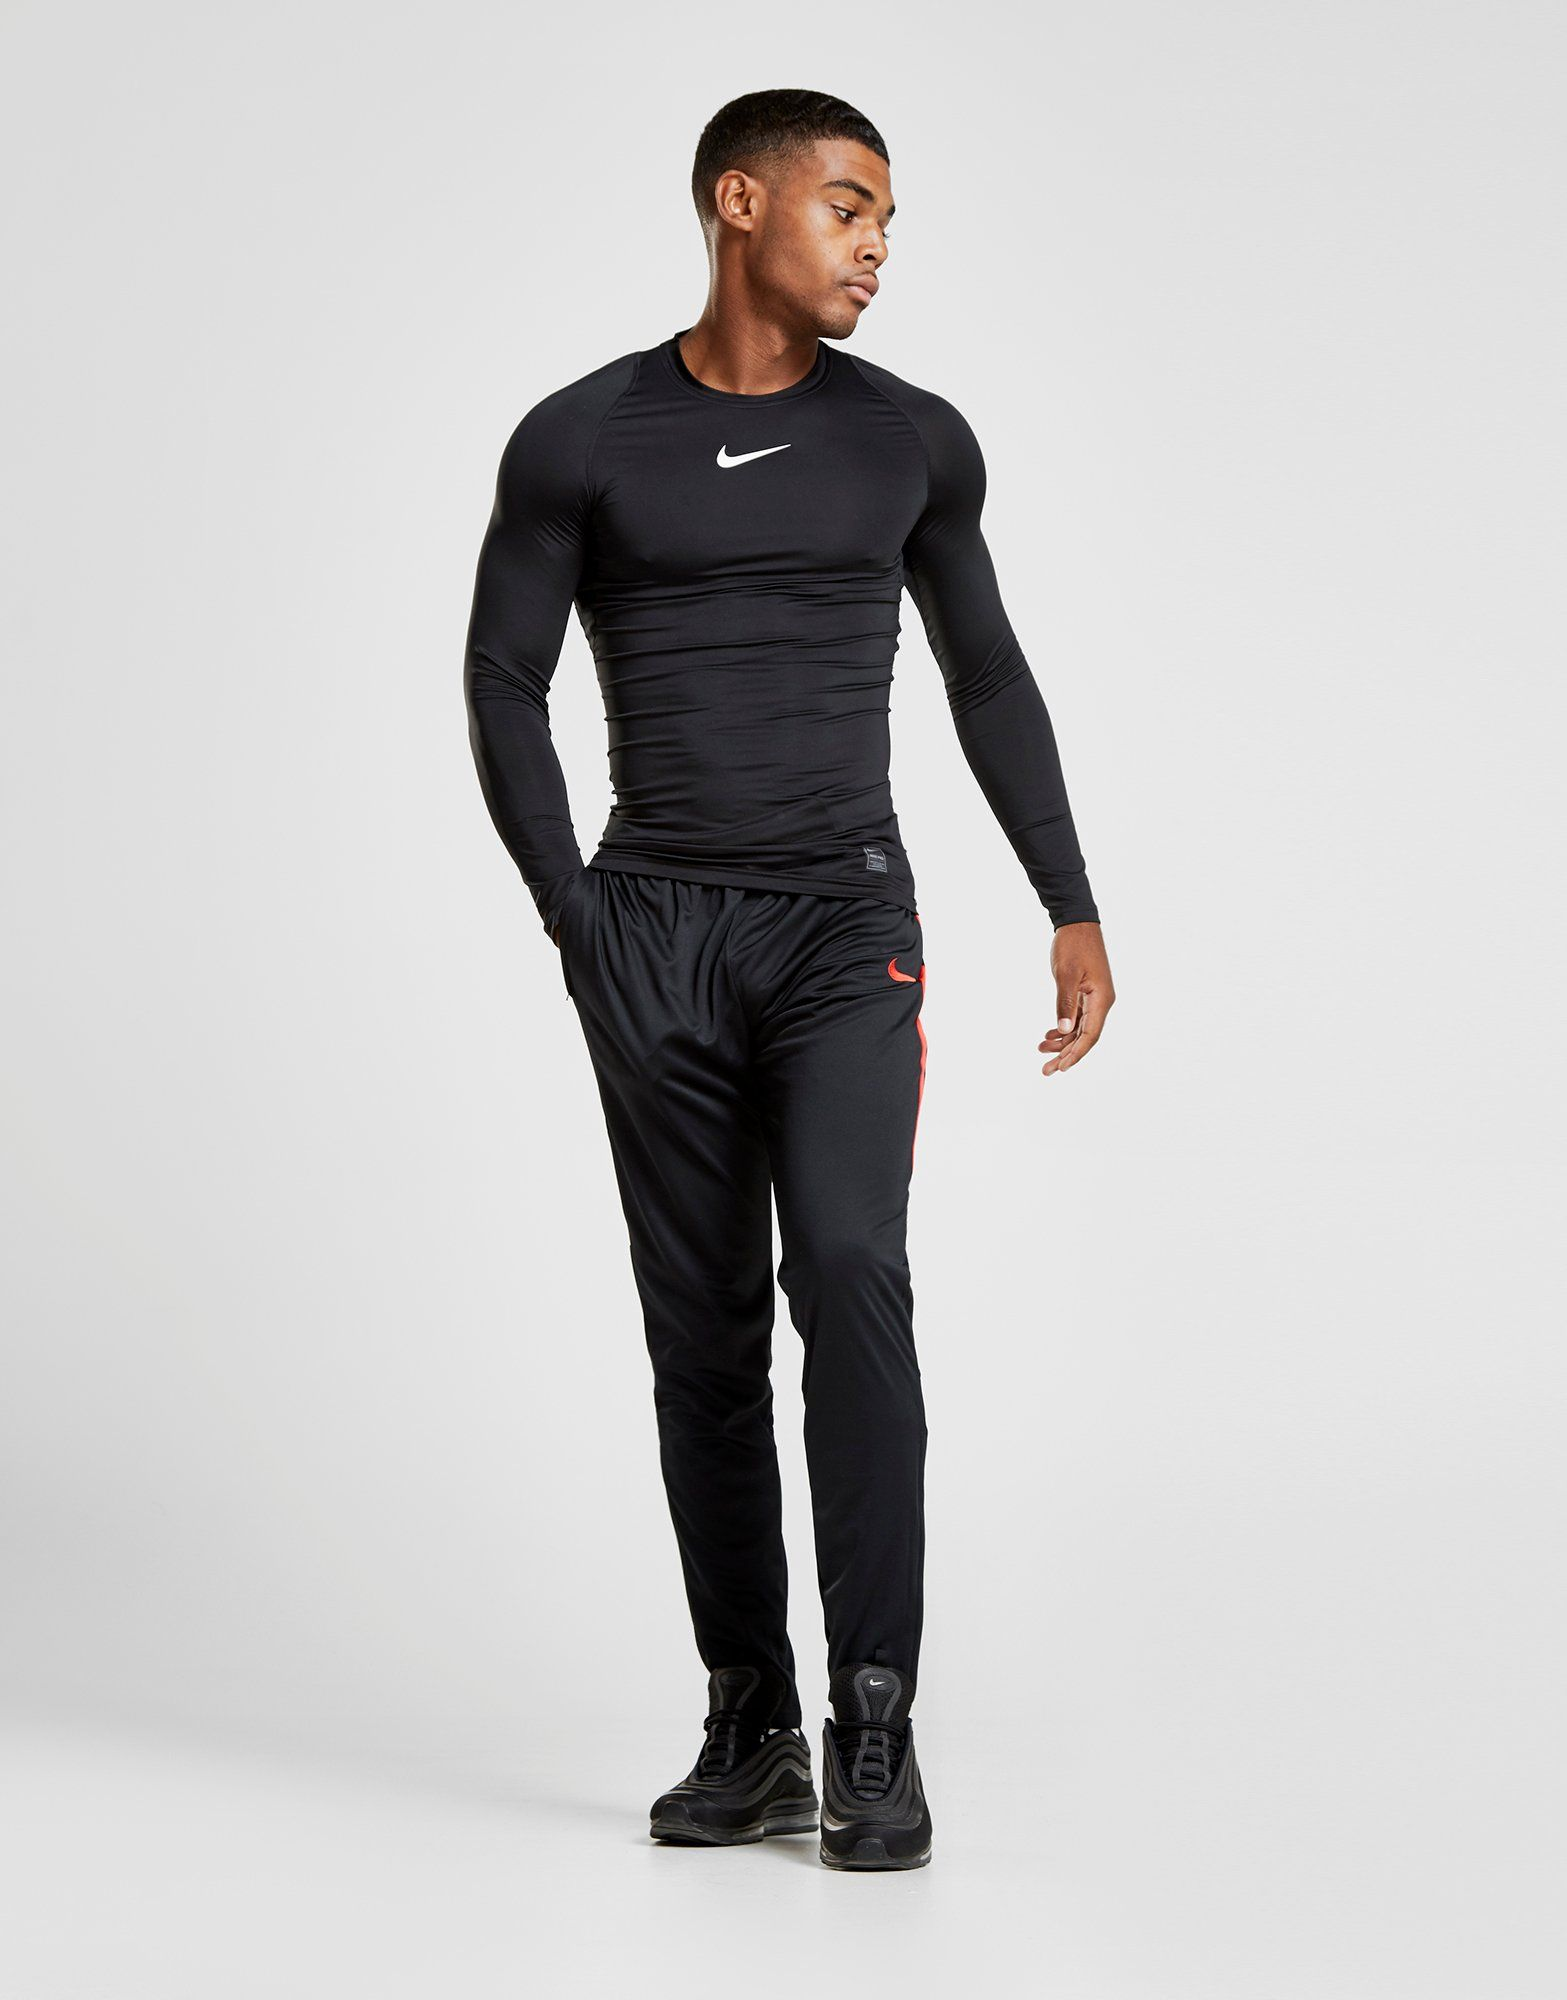 Nike Pro Long Sleeve Compression T-Shirt